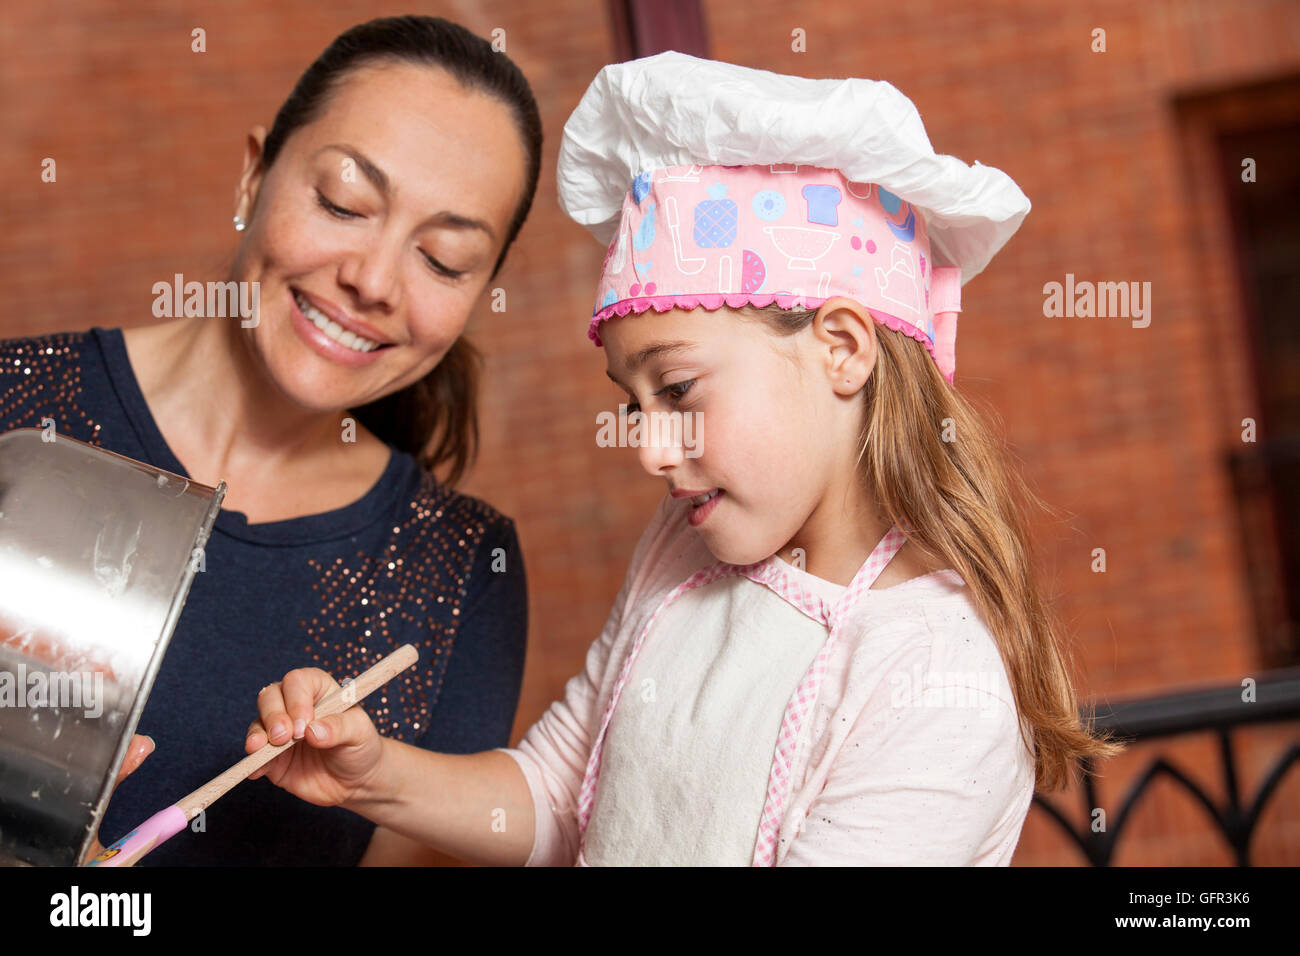 Preparing cupcakes with mom - Stock Image